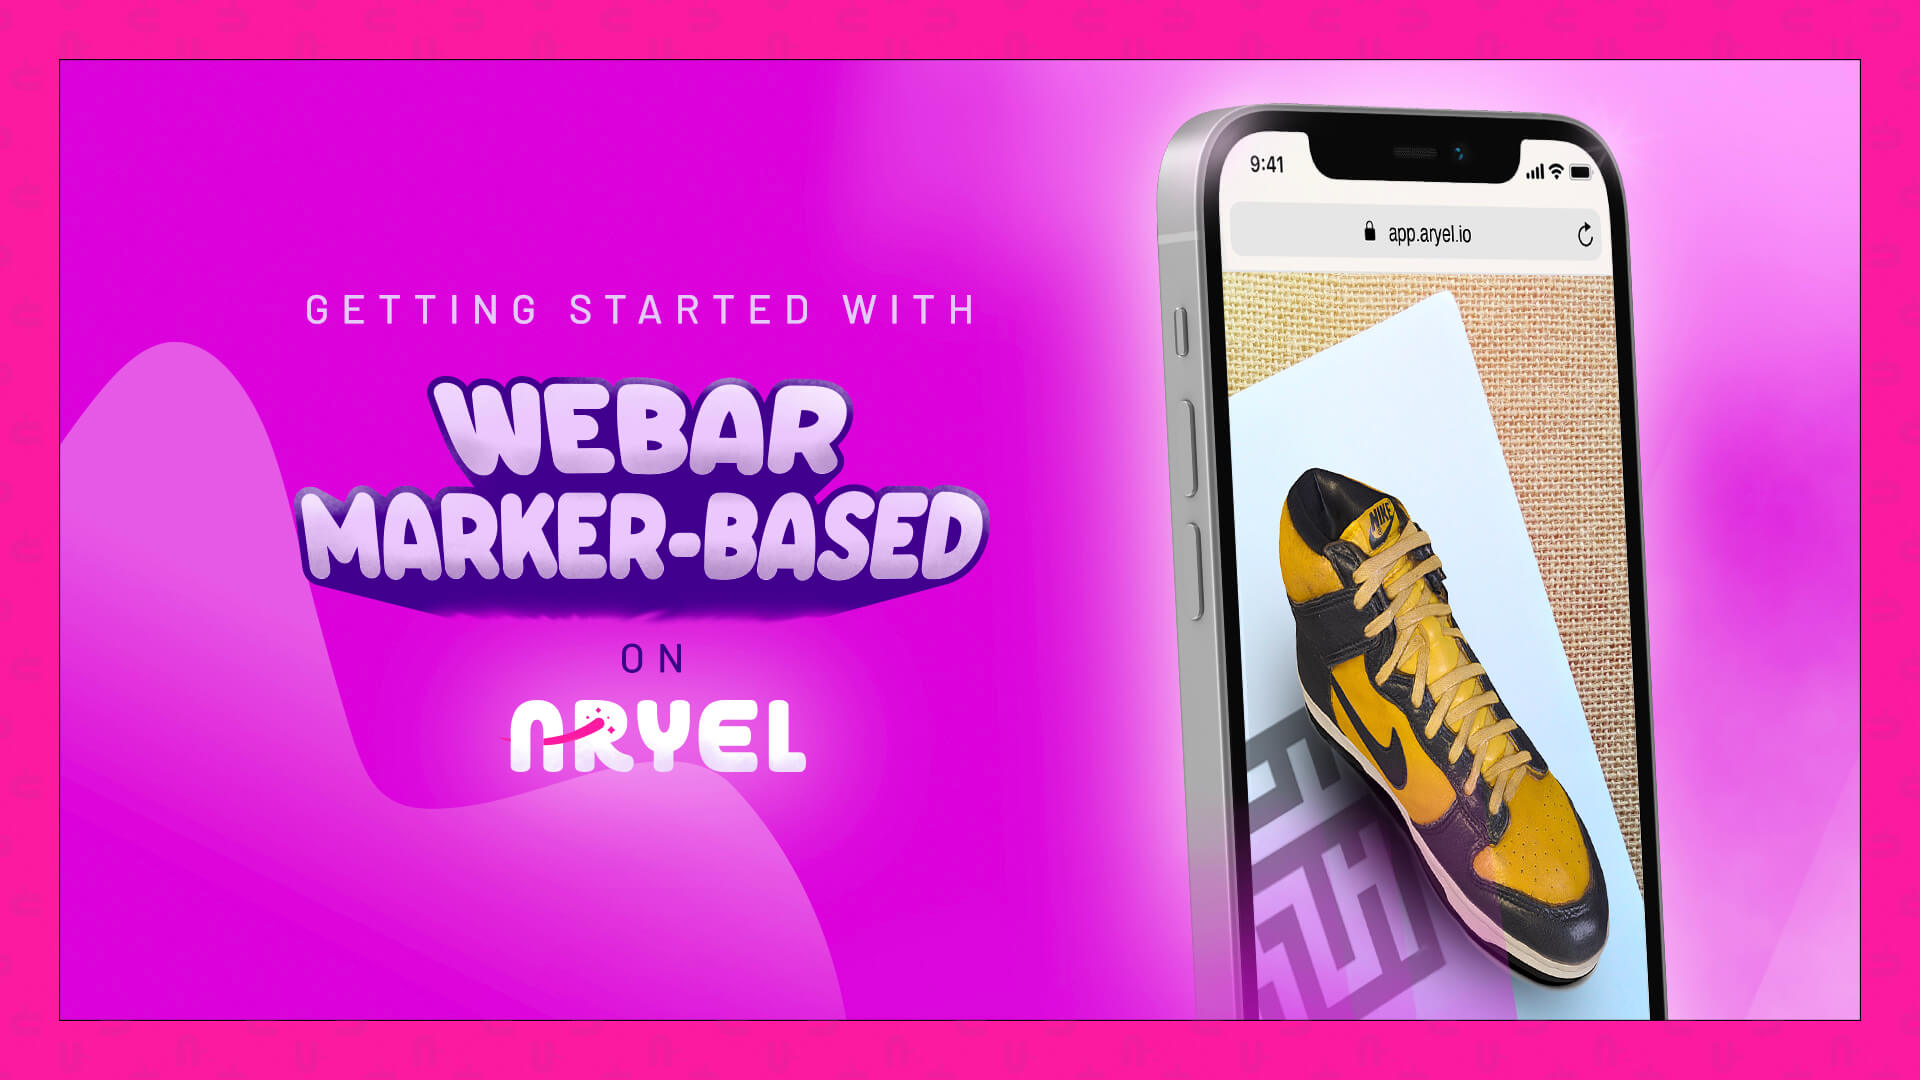 Getting started with WebAR Marker-Based on Aryel